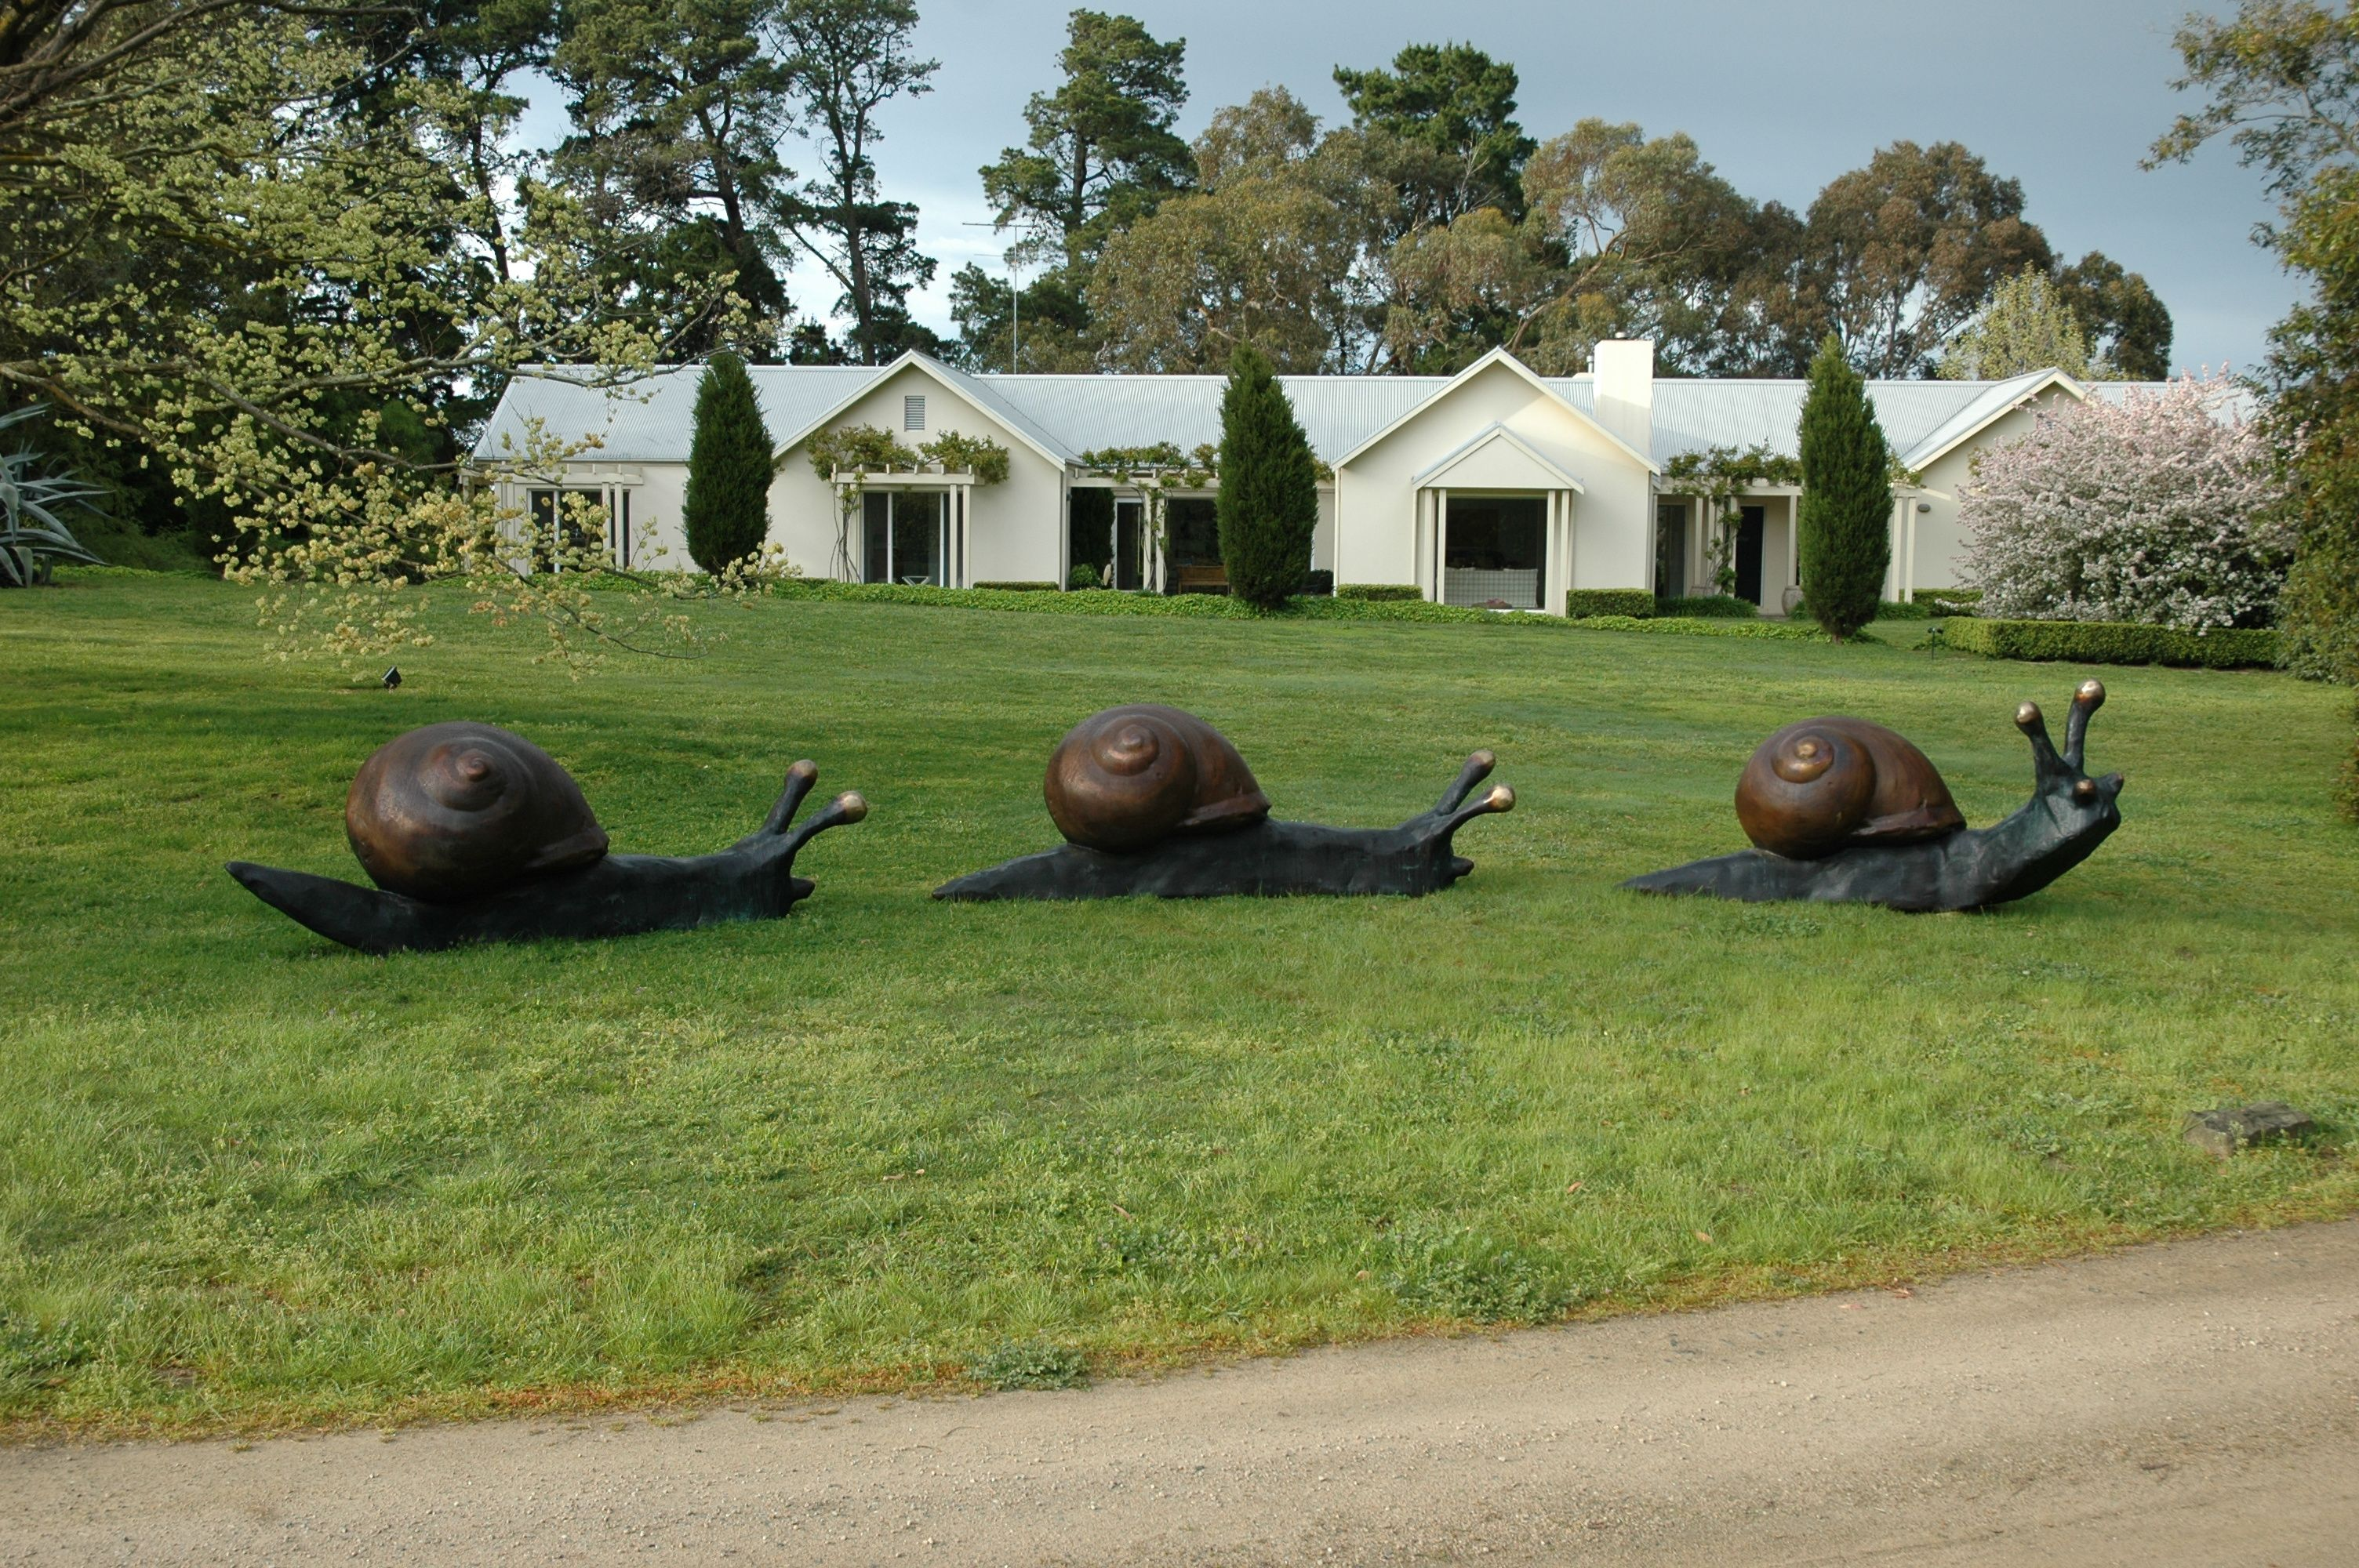 Giant snail trail willie wildlife sculpture sculpture for Lawn ornaments for sale